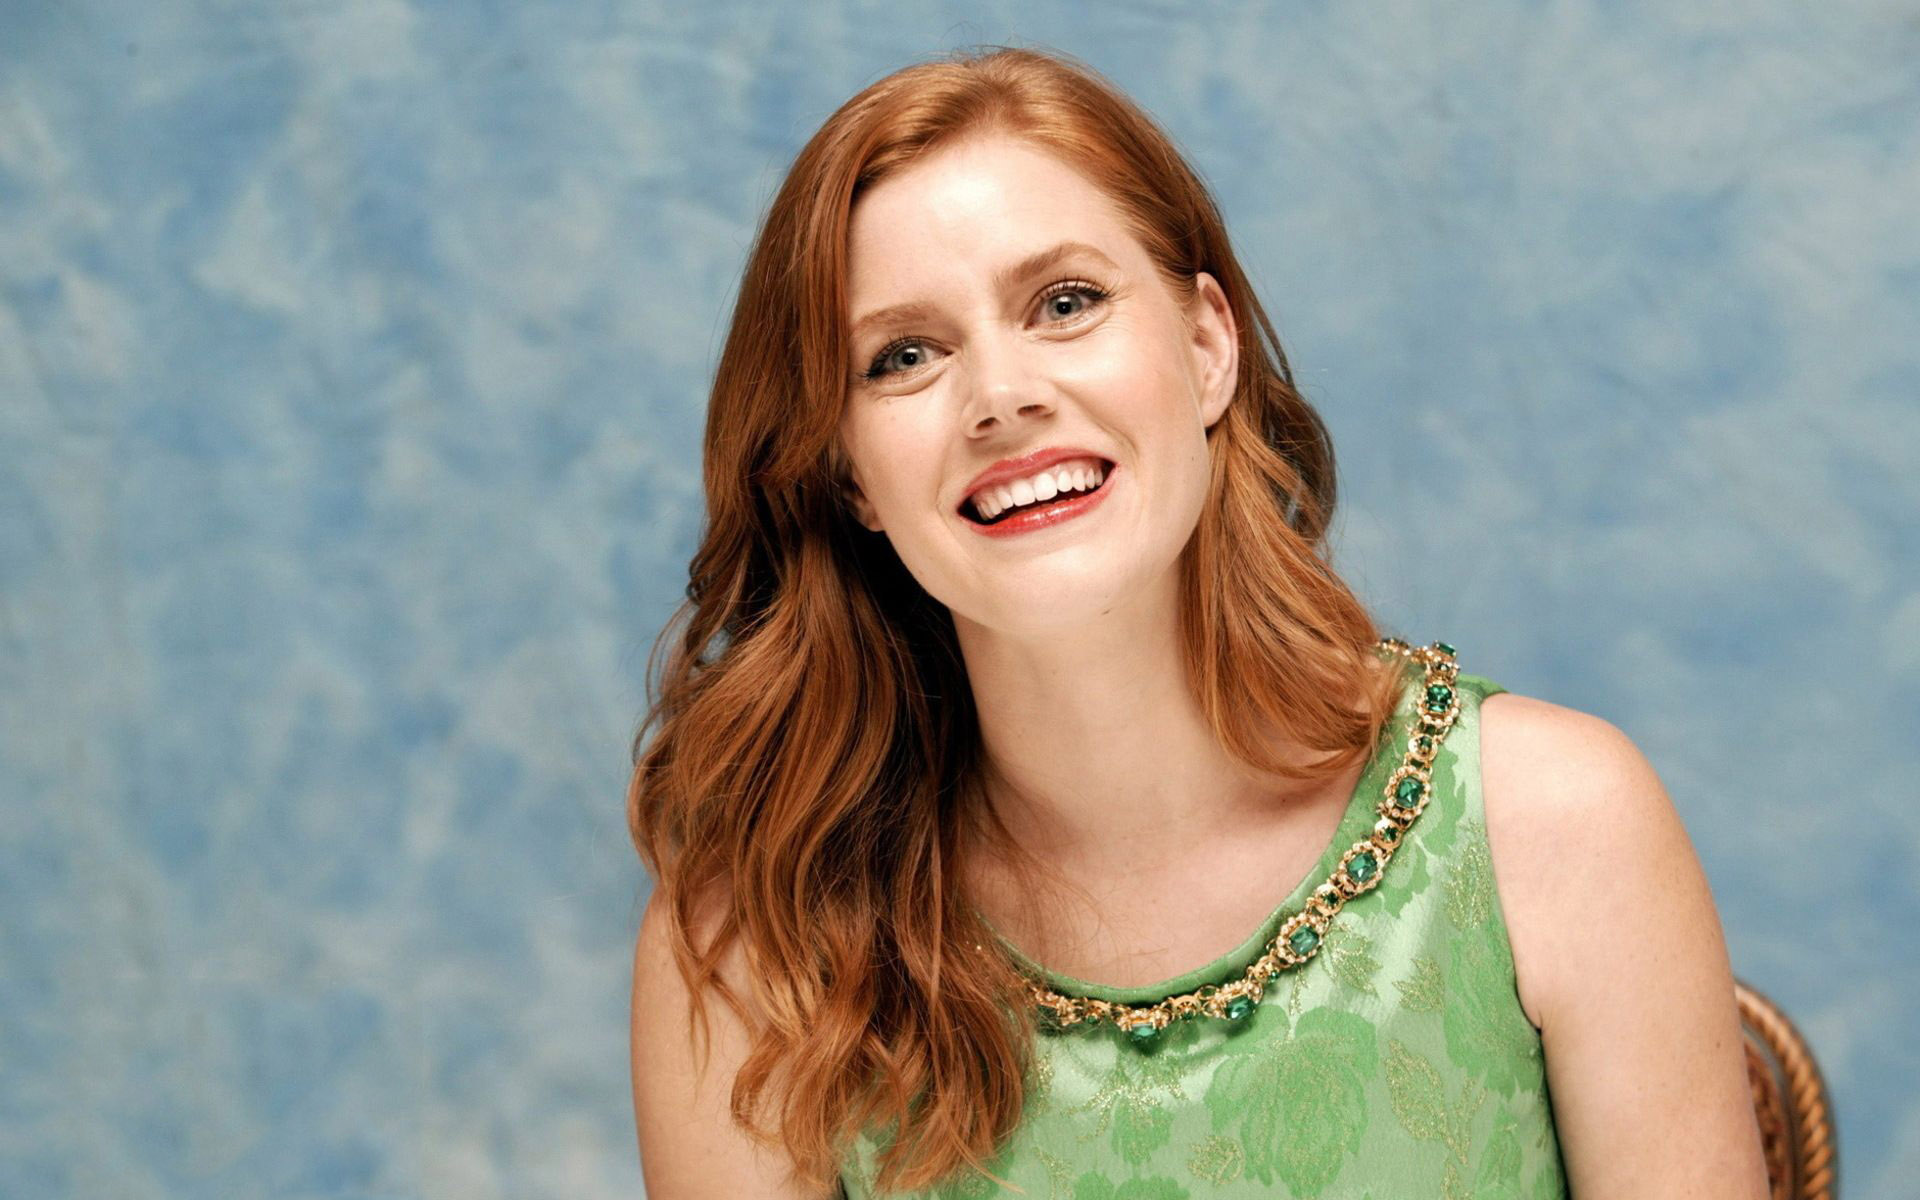 stunning amy adams excellent smiling face look hd background mobile free images desktop